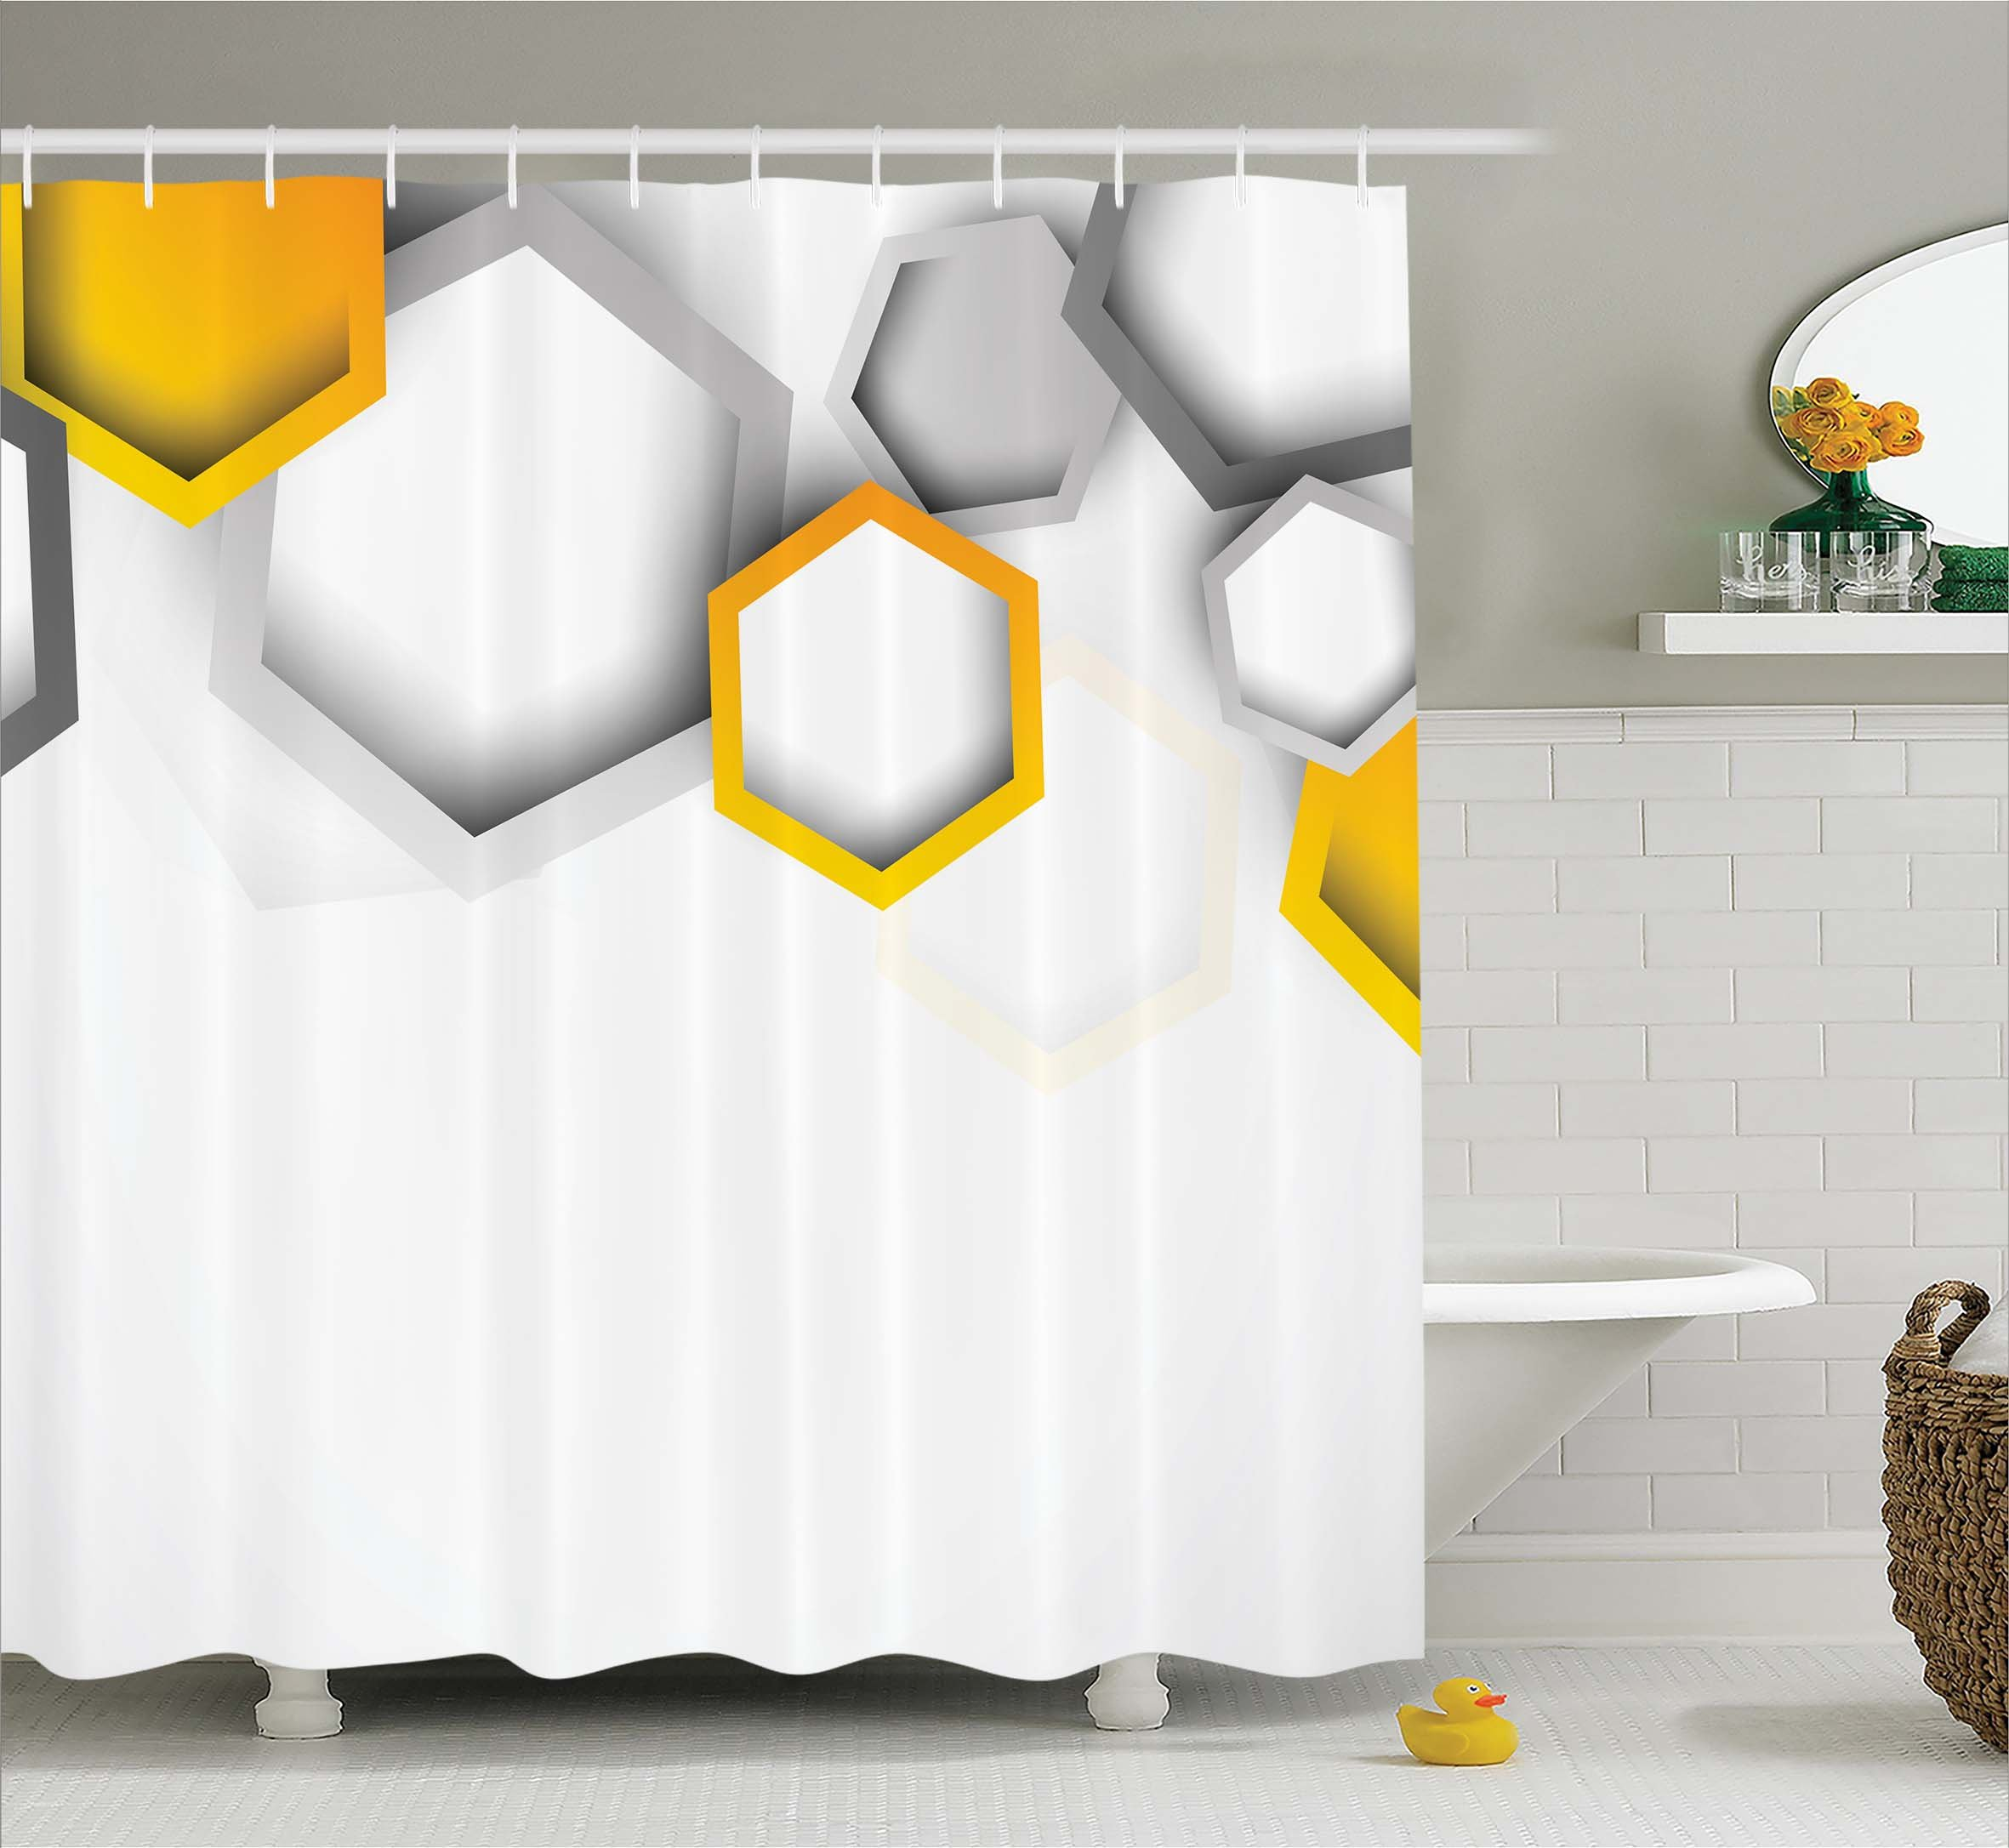 Ambesonne Abstract Decor Shower Curtain by, Geometric Hexagon Beeswax Shaped Modern Cool Artistic Artwork, Fabric Bathroom Decor Set with Hooks, 84 Inches Extra Long, Grey Yellow and White